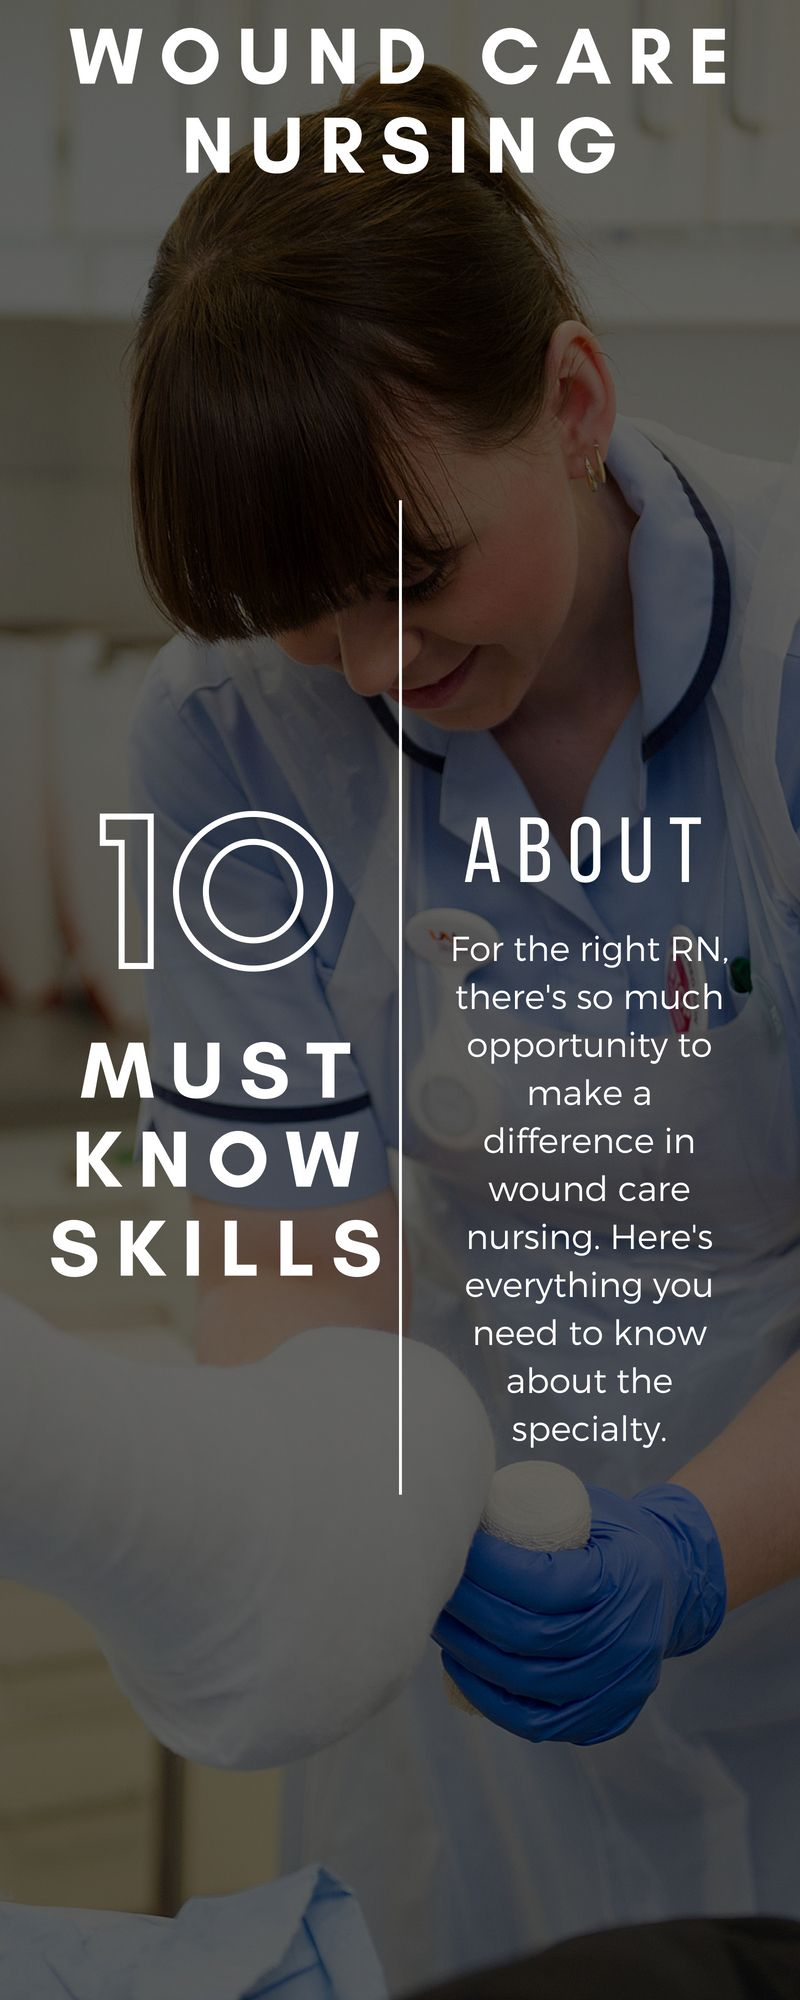 For The Right RN Theres So Much Opportunity To Make A Difference In Wound Care Nursing Heres Everything You Need Know About Specialty